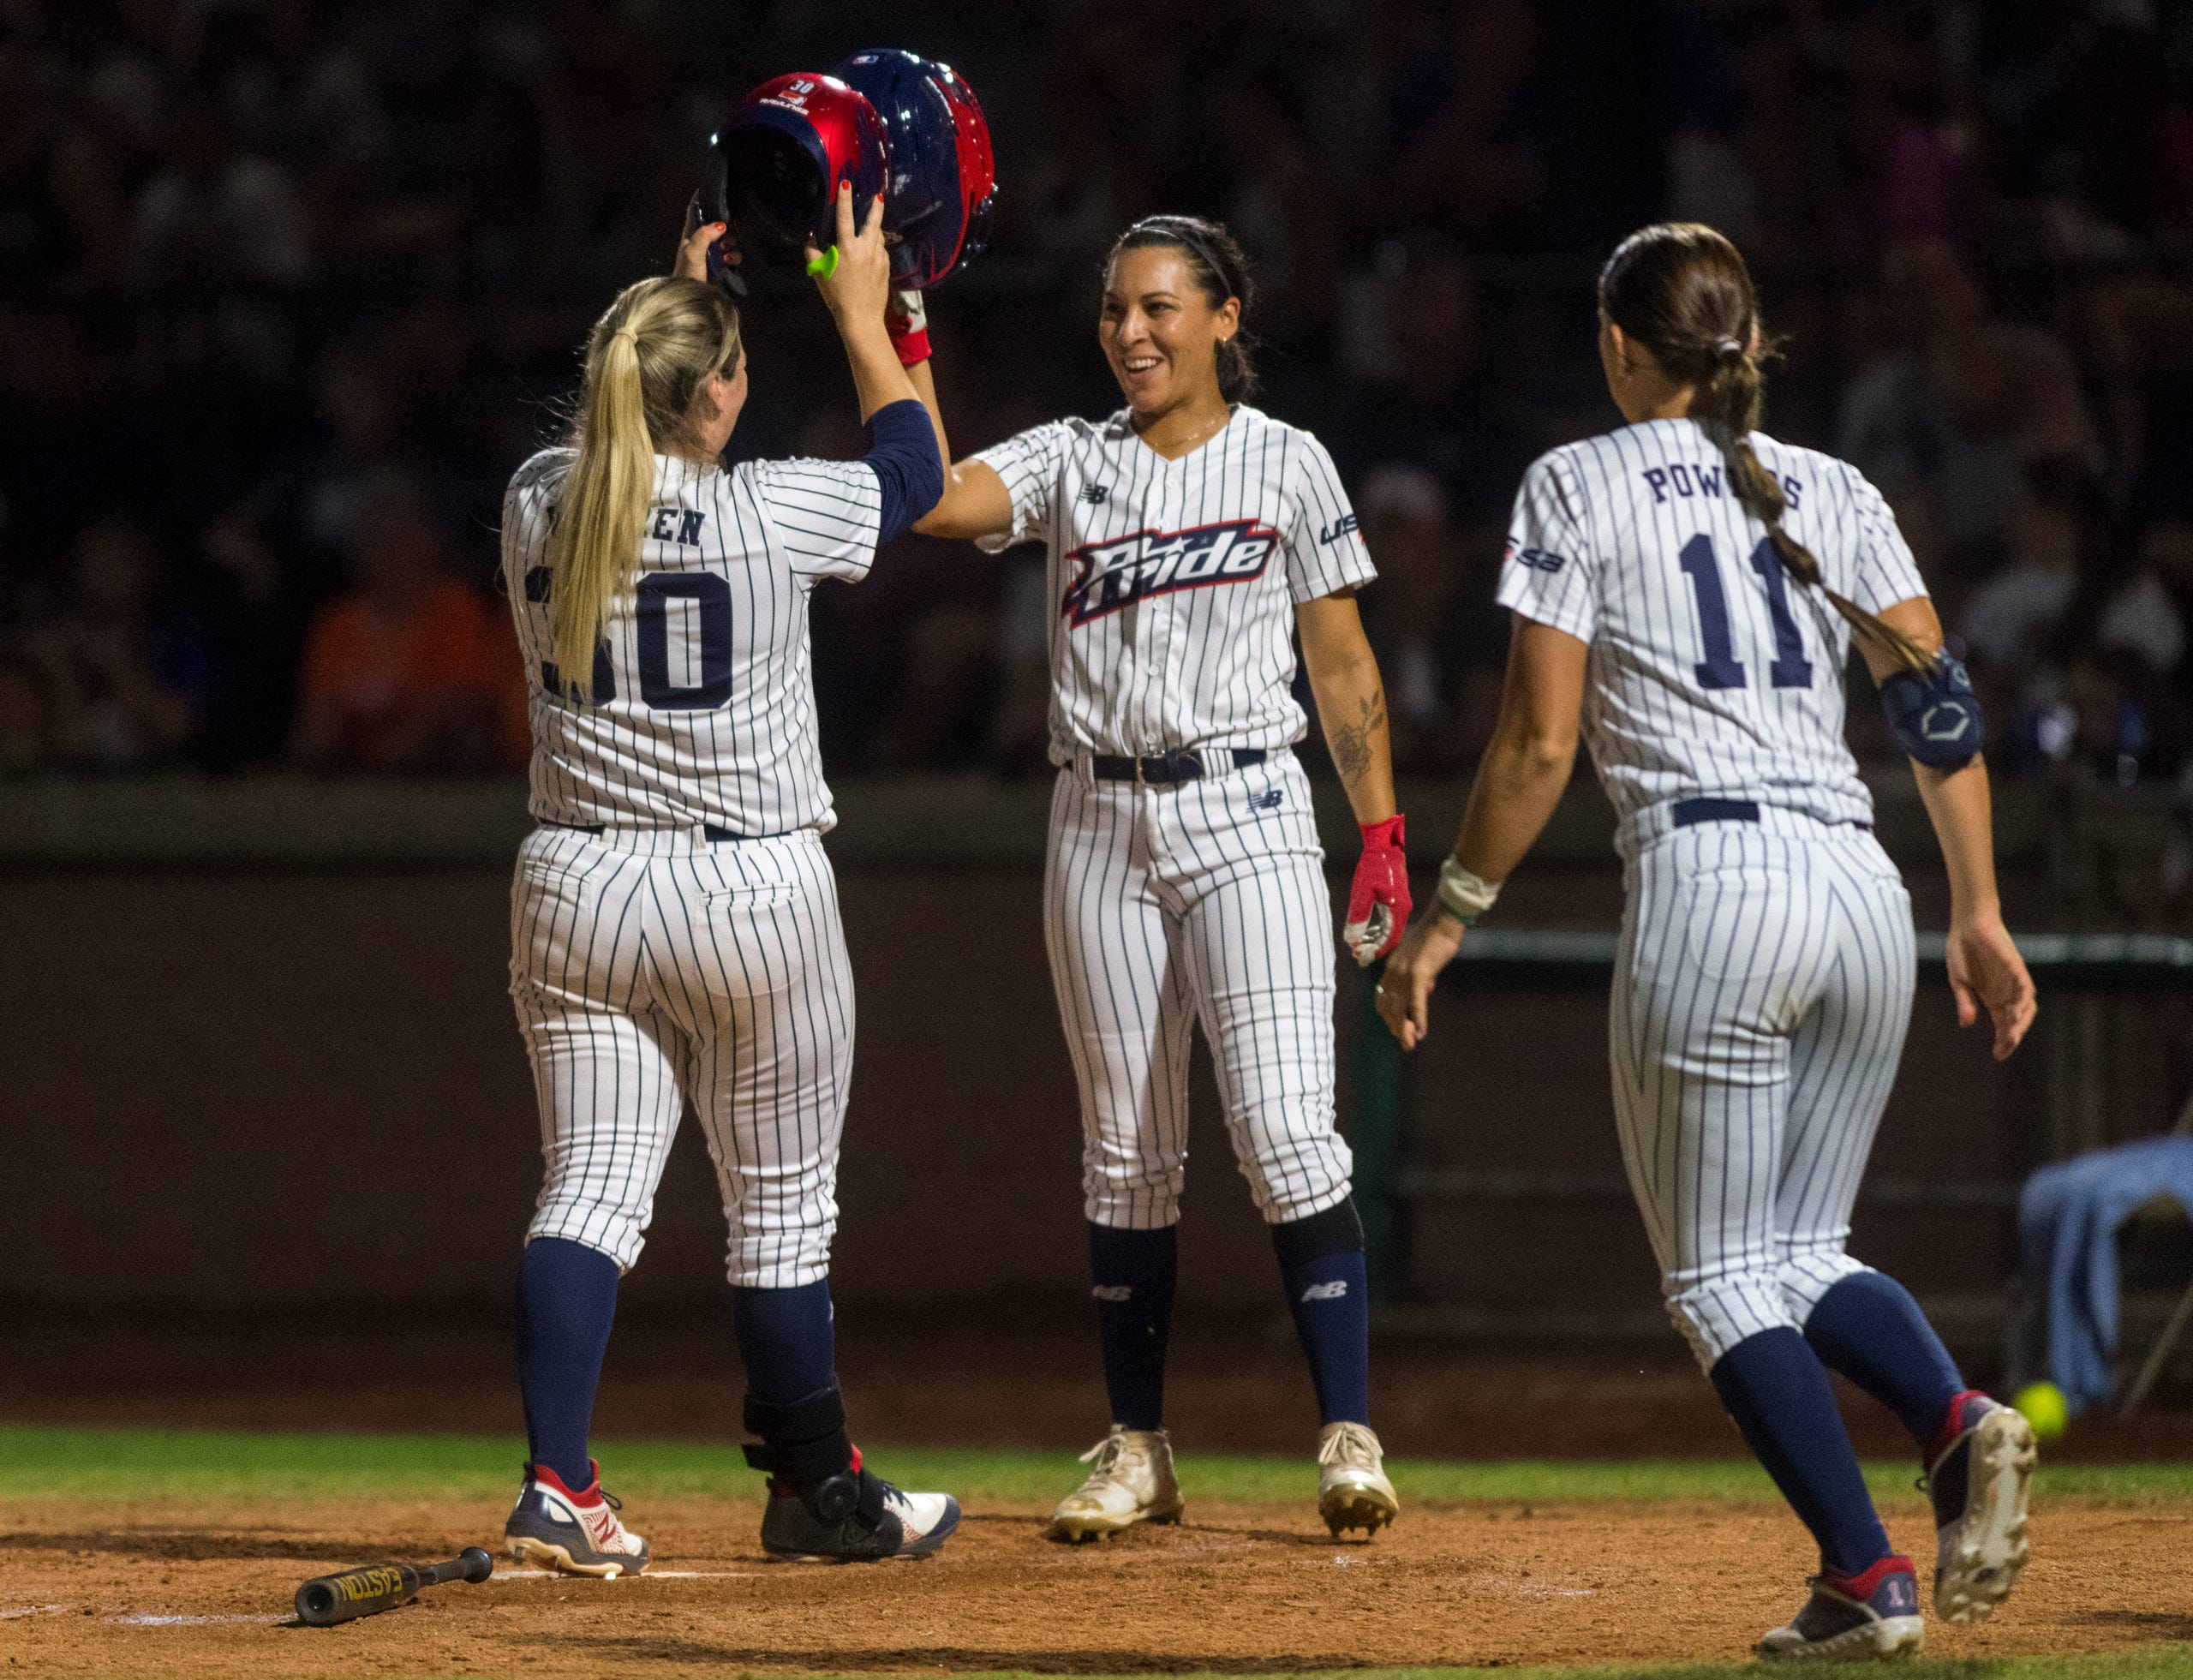 USSSA Pride's Jessie Warren (30) and USSSA Pride's Sierra Romero (32) celebrate after Warren hits a home run as the USSSA Pride takes on Team Florida in an exhibition game at Bosse Field in Evansville, Ind., Wednesday evening, July 14, 2021.